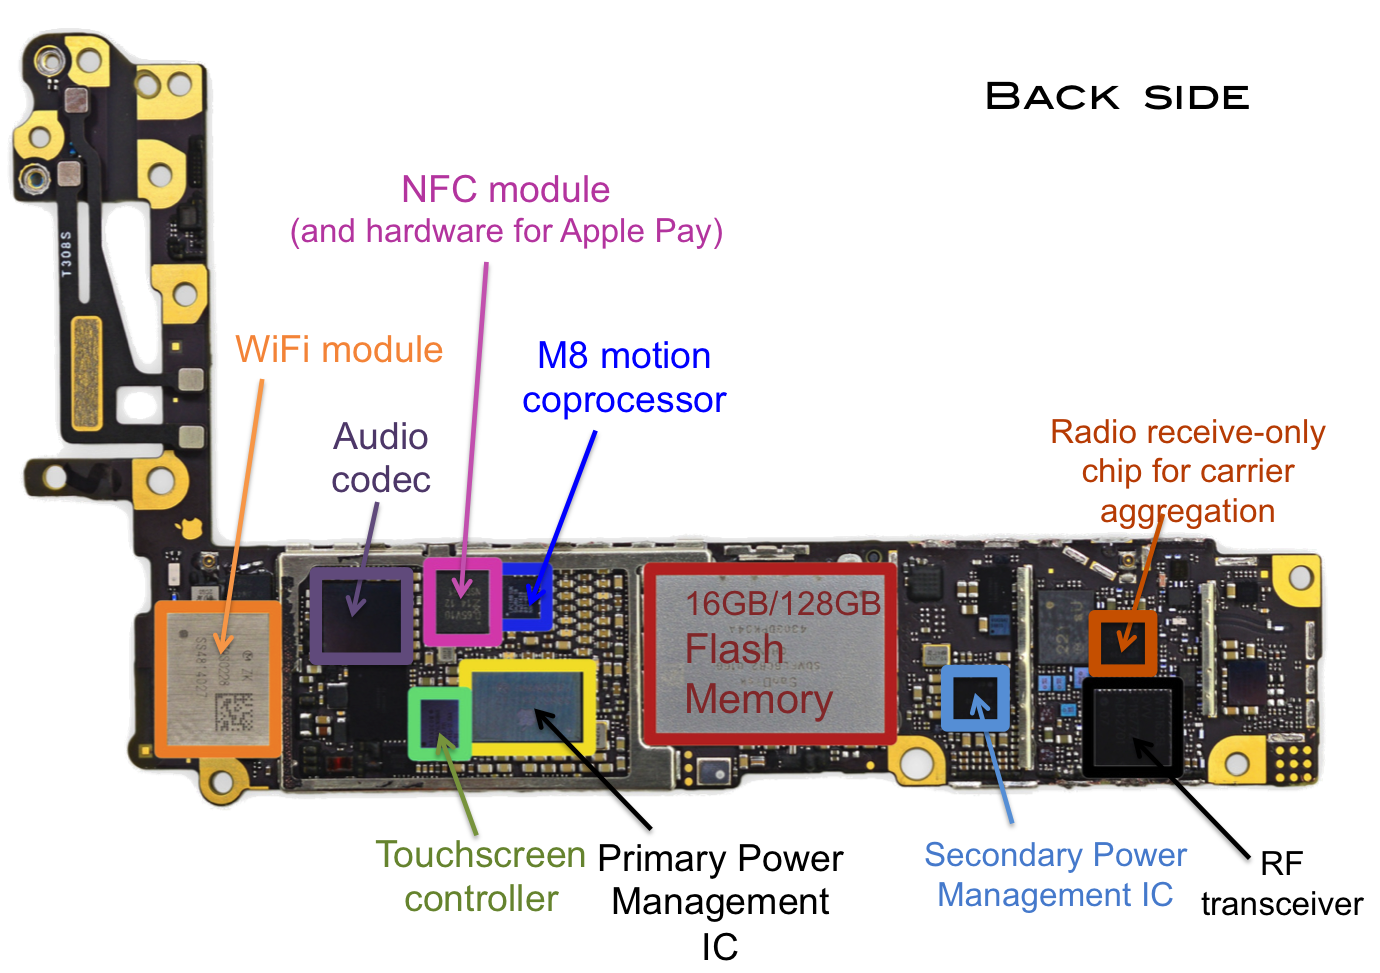 medium resolution of 59 the anatomy of an iphone 6 qnovo rh qnovo com ipad 2 logic board diagram ipad 2 logic board diagram